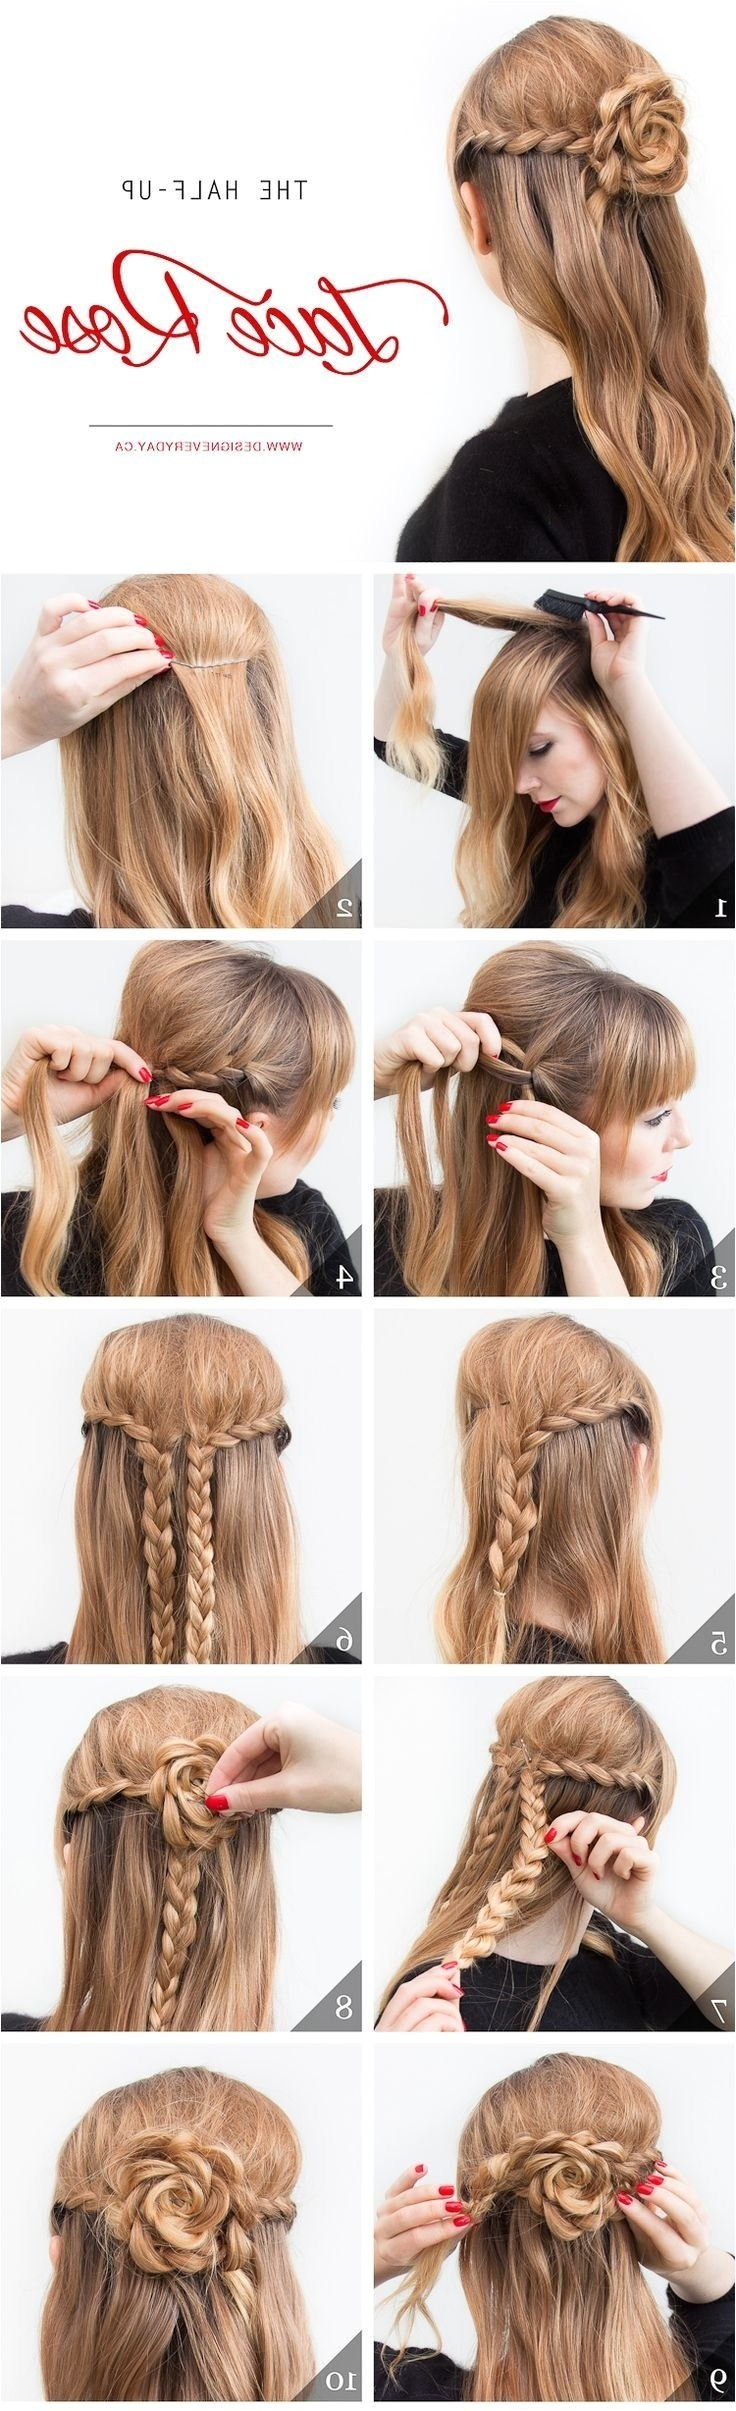 Hairstyles for Church Easy Hairstyles for Church Easy